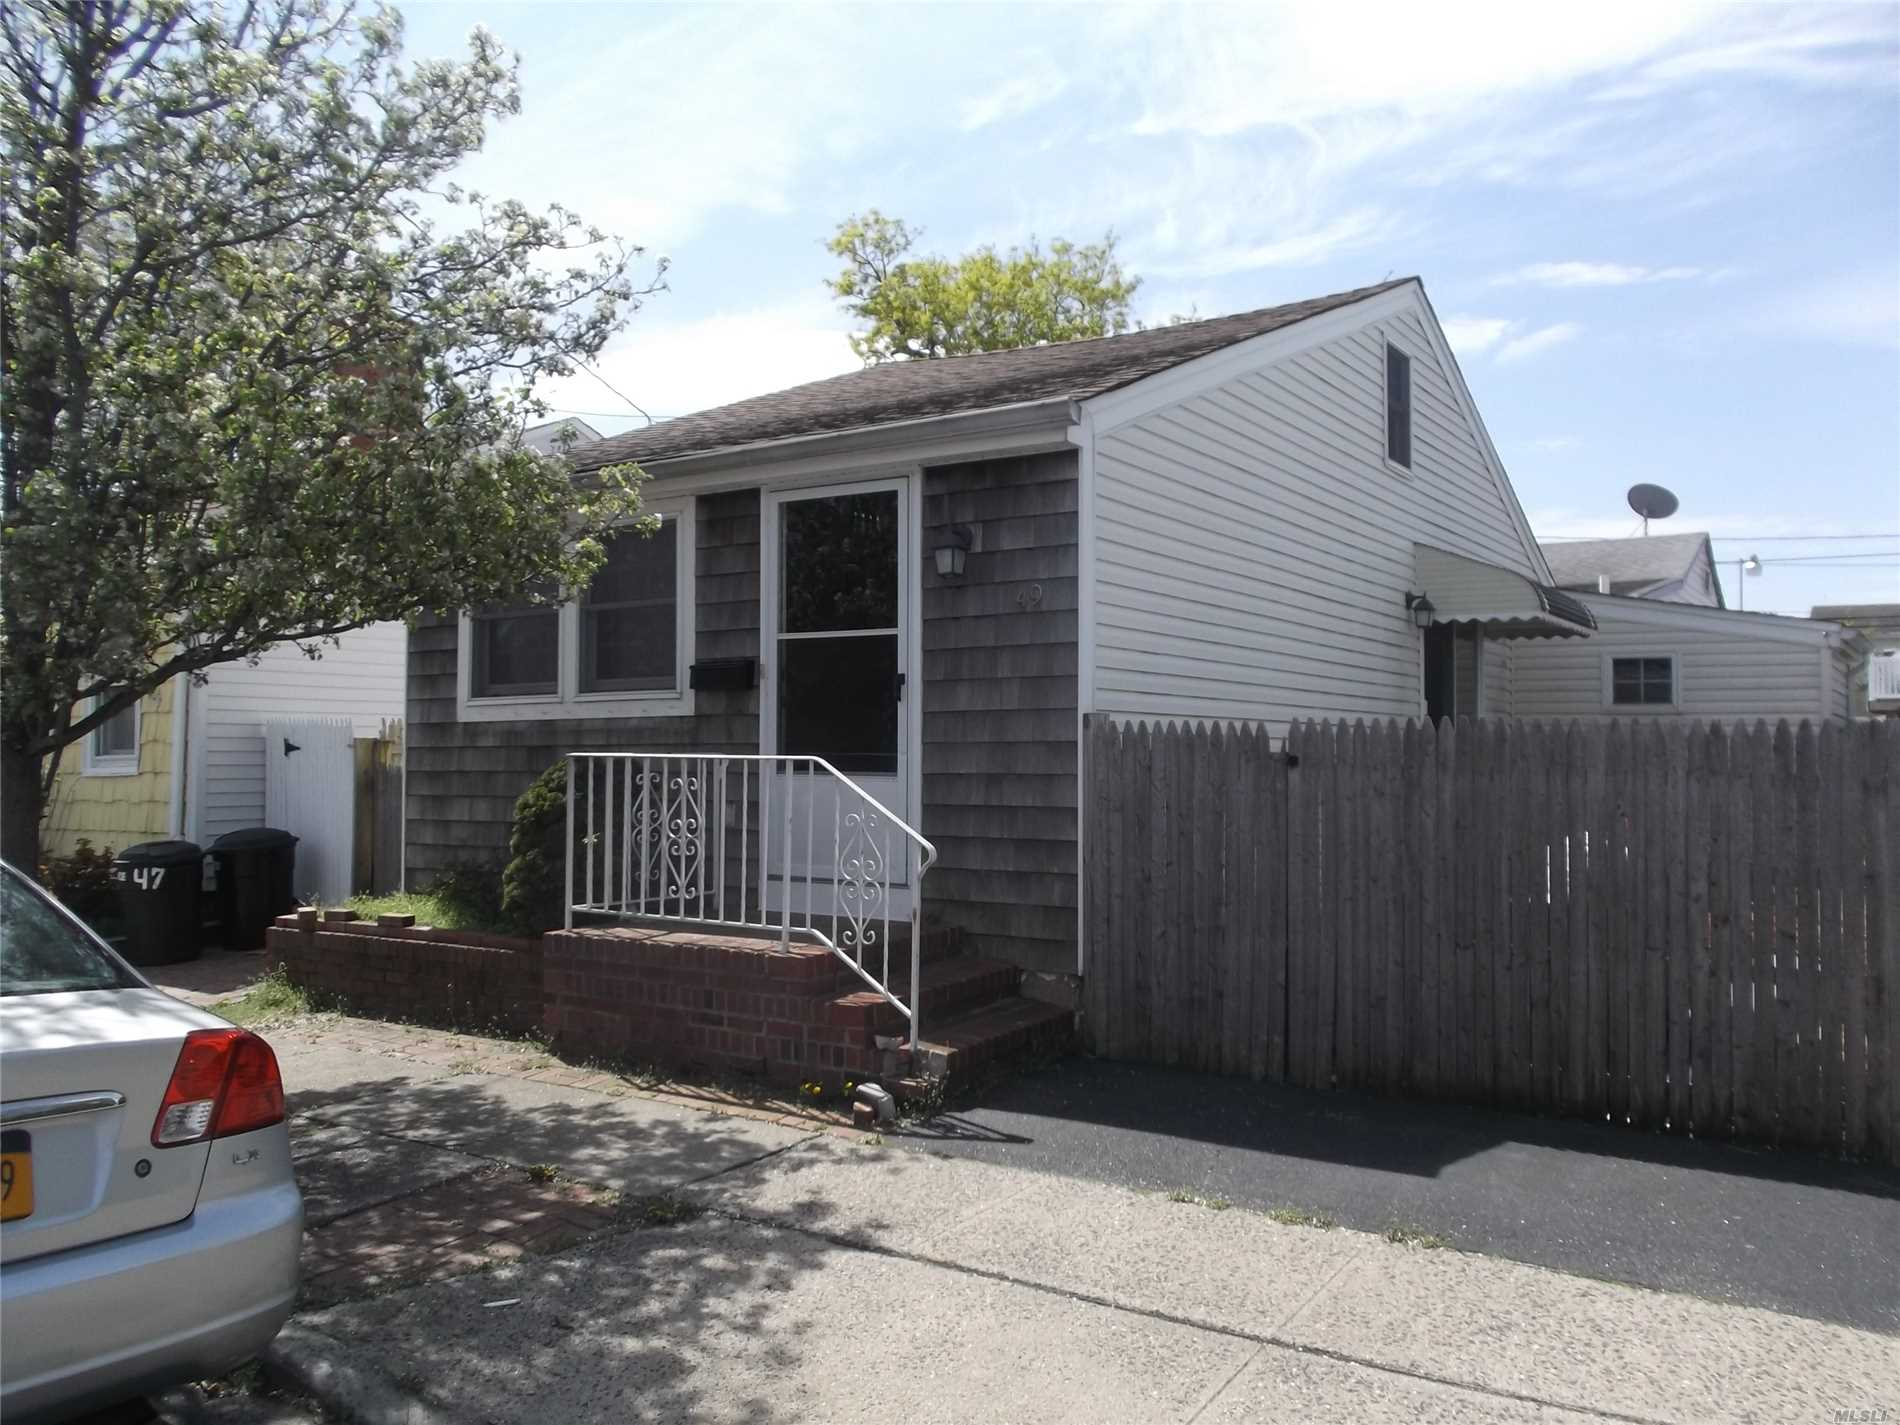 Bungalow, One Bedroom with Loft. Yard with Patio, New Gas and Hot Water Heater,  Perfect Summer Cottage for Fisherman or Local Boat Owner! Current Owner Has No Flood Insurance